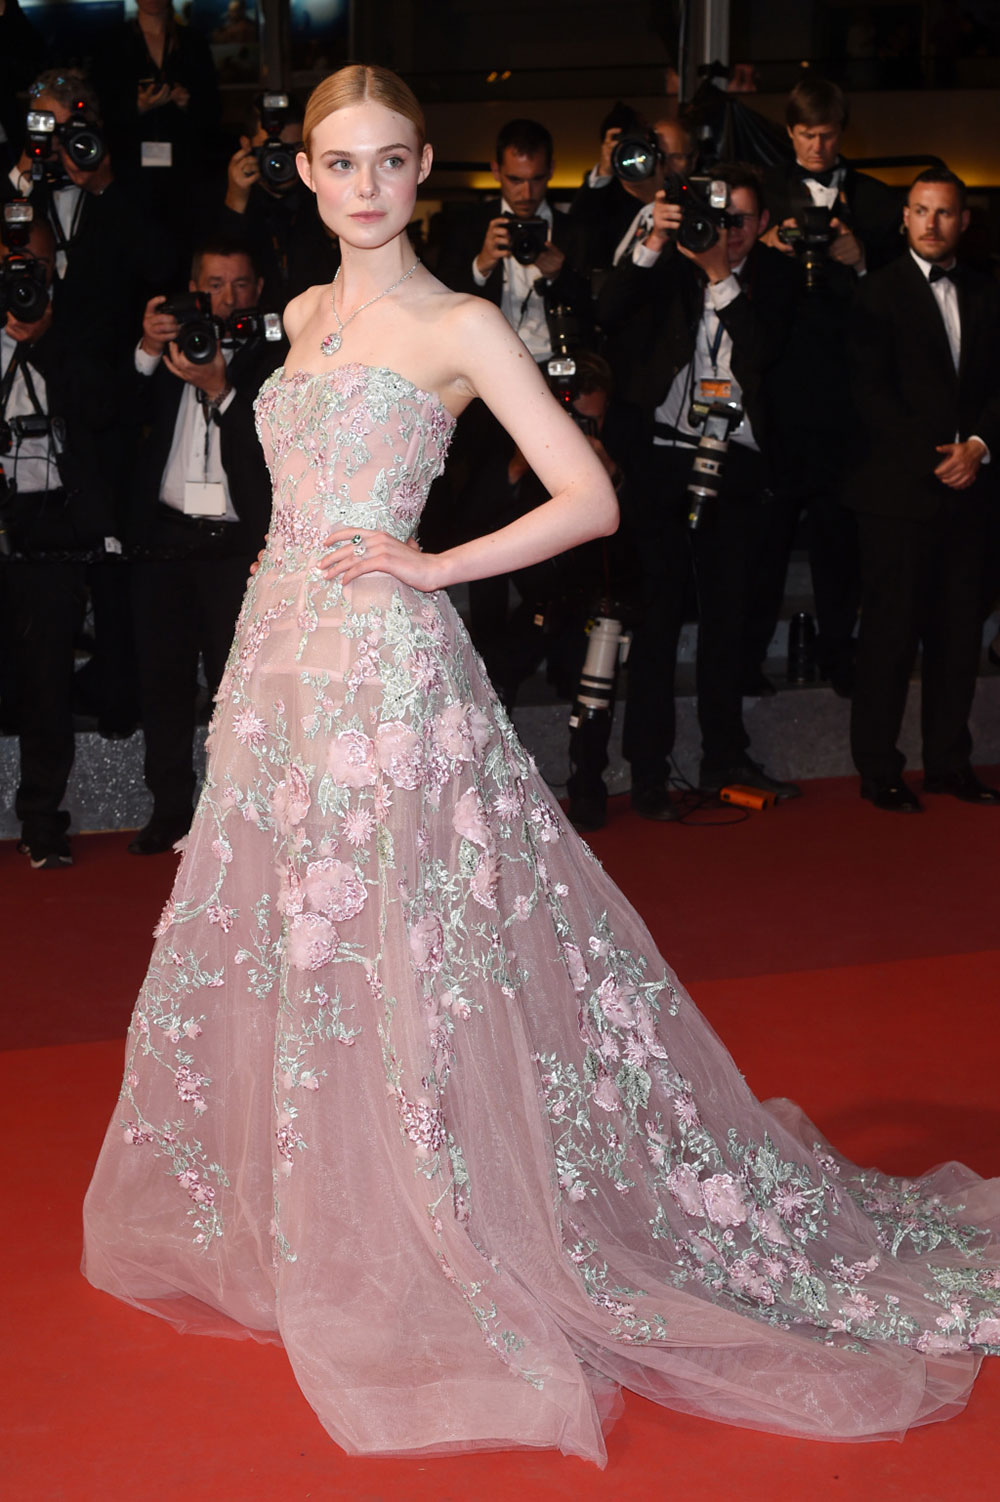 Elle Fanning at the Cannes premiere of 'The Neon Demon'